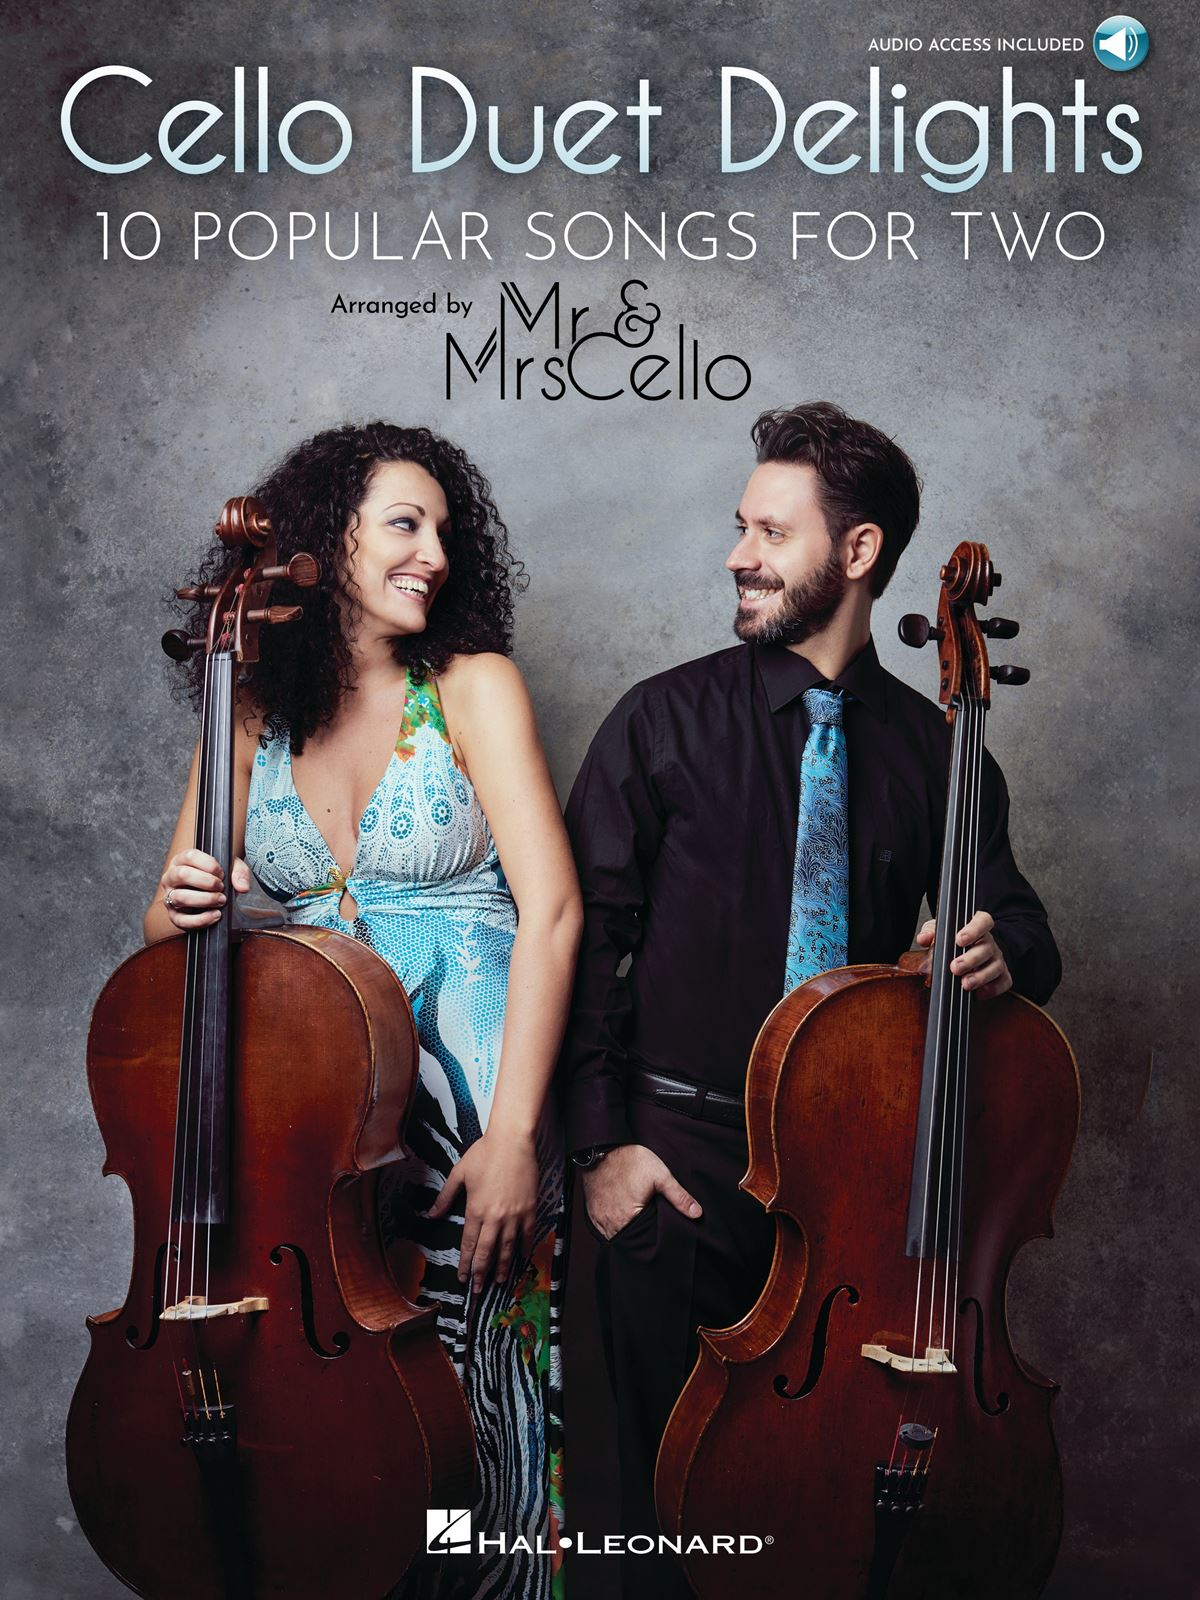 Mr. & Mrs. Cello: Cello Duet Delights: Cello Duet: Score